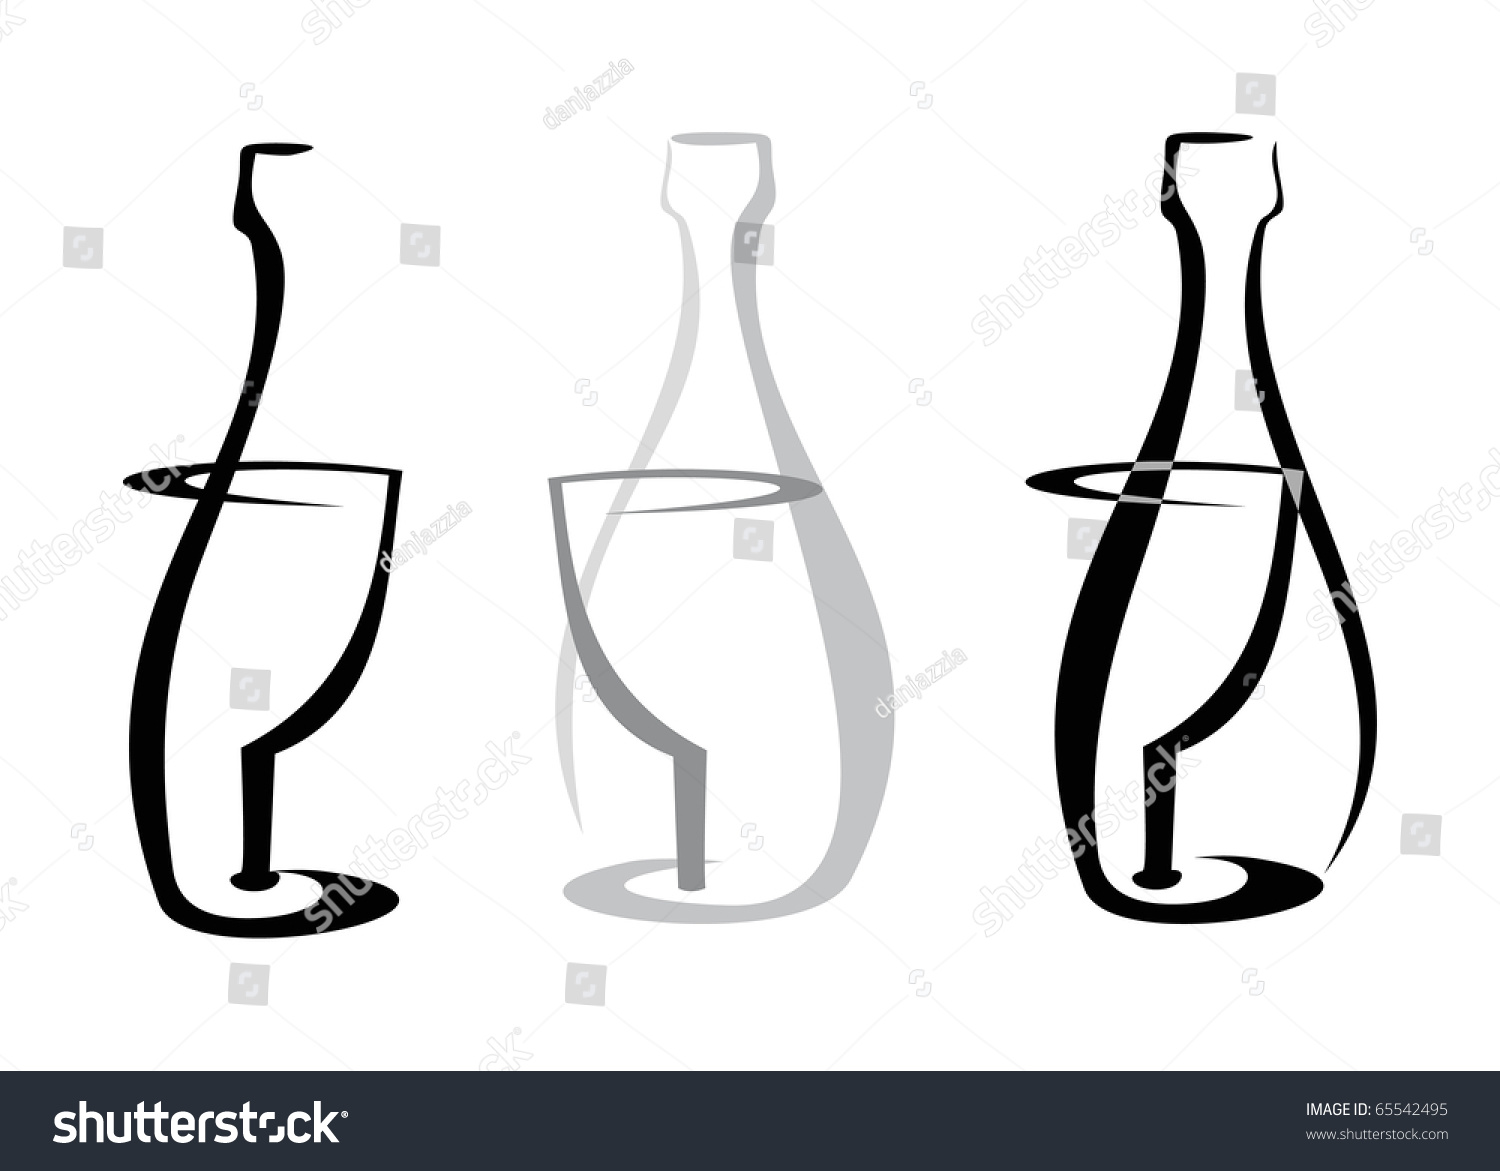 outline of wine bottle and glass on white background isolated design element black line. Black Bedroom Furniture Sets. Home Design Ideas